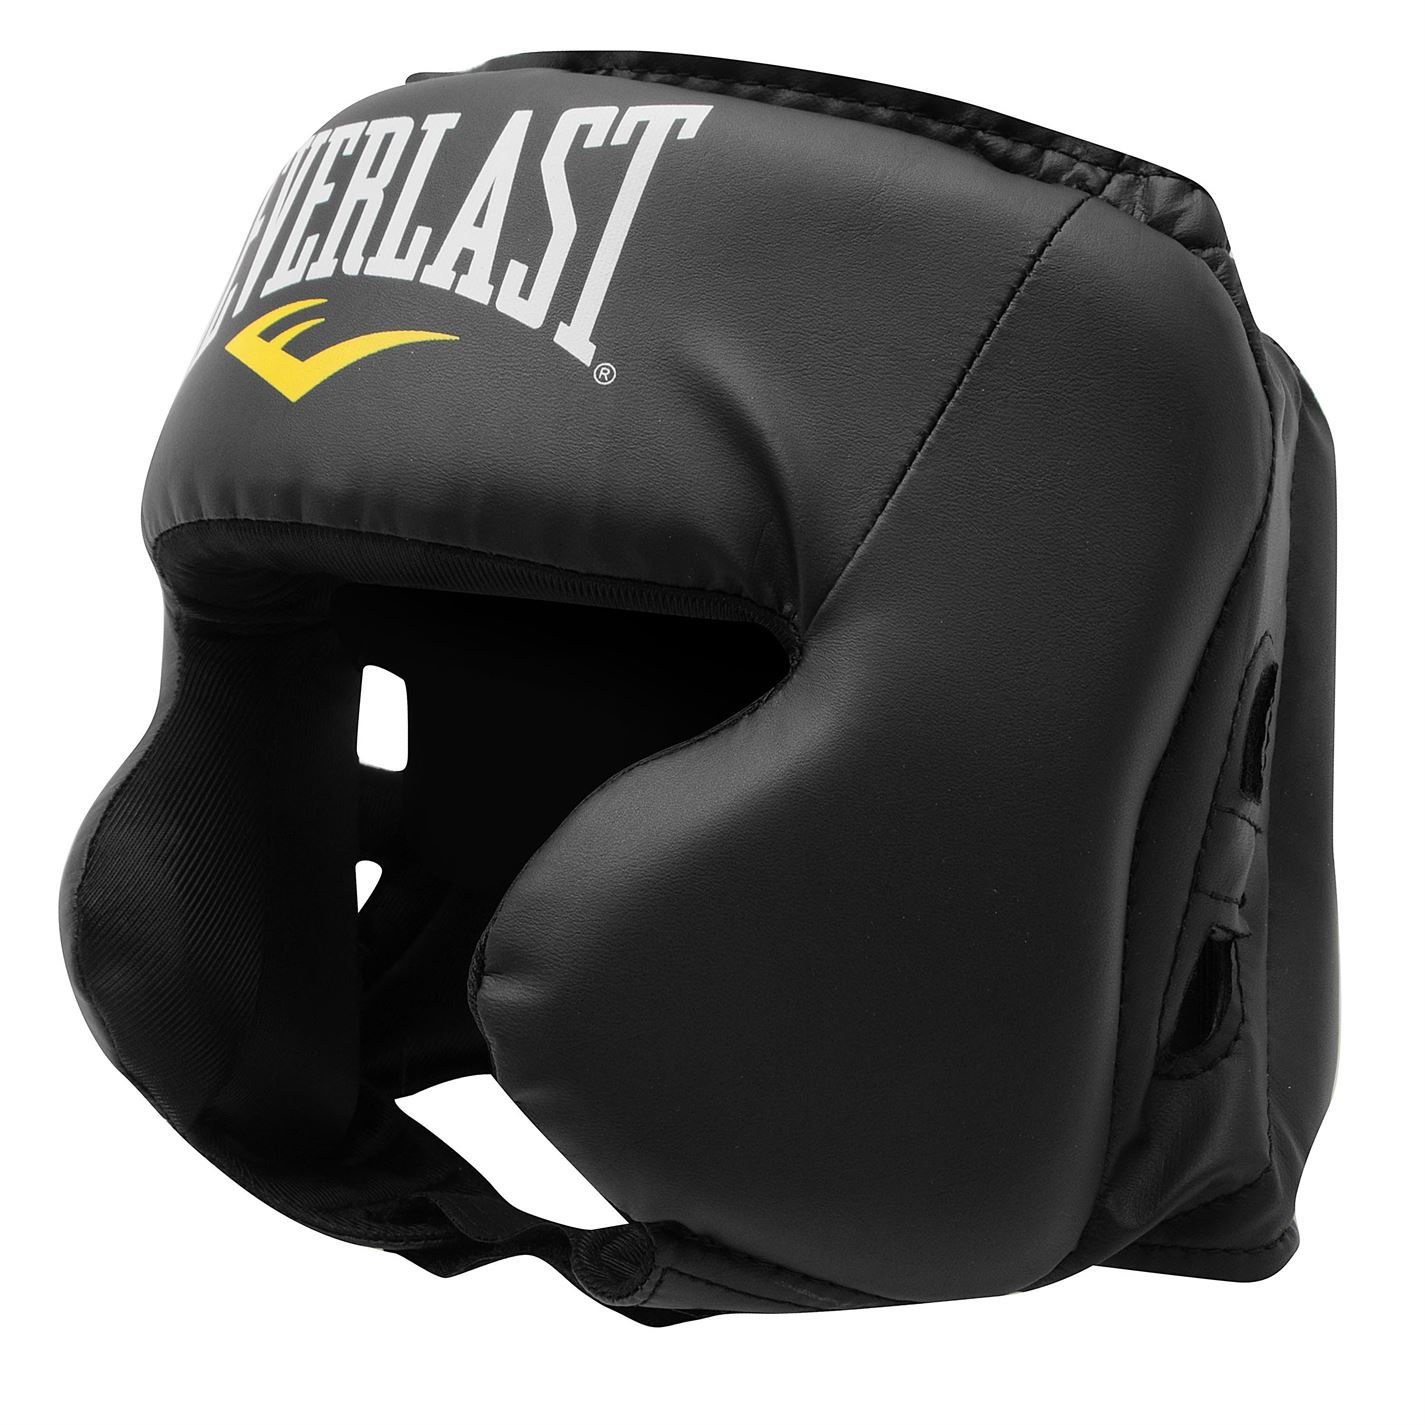 Details About Everlast Boxing Training Headguard Black Gym Fitness